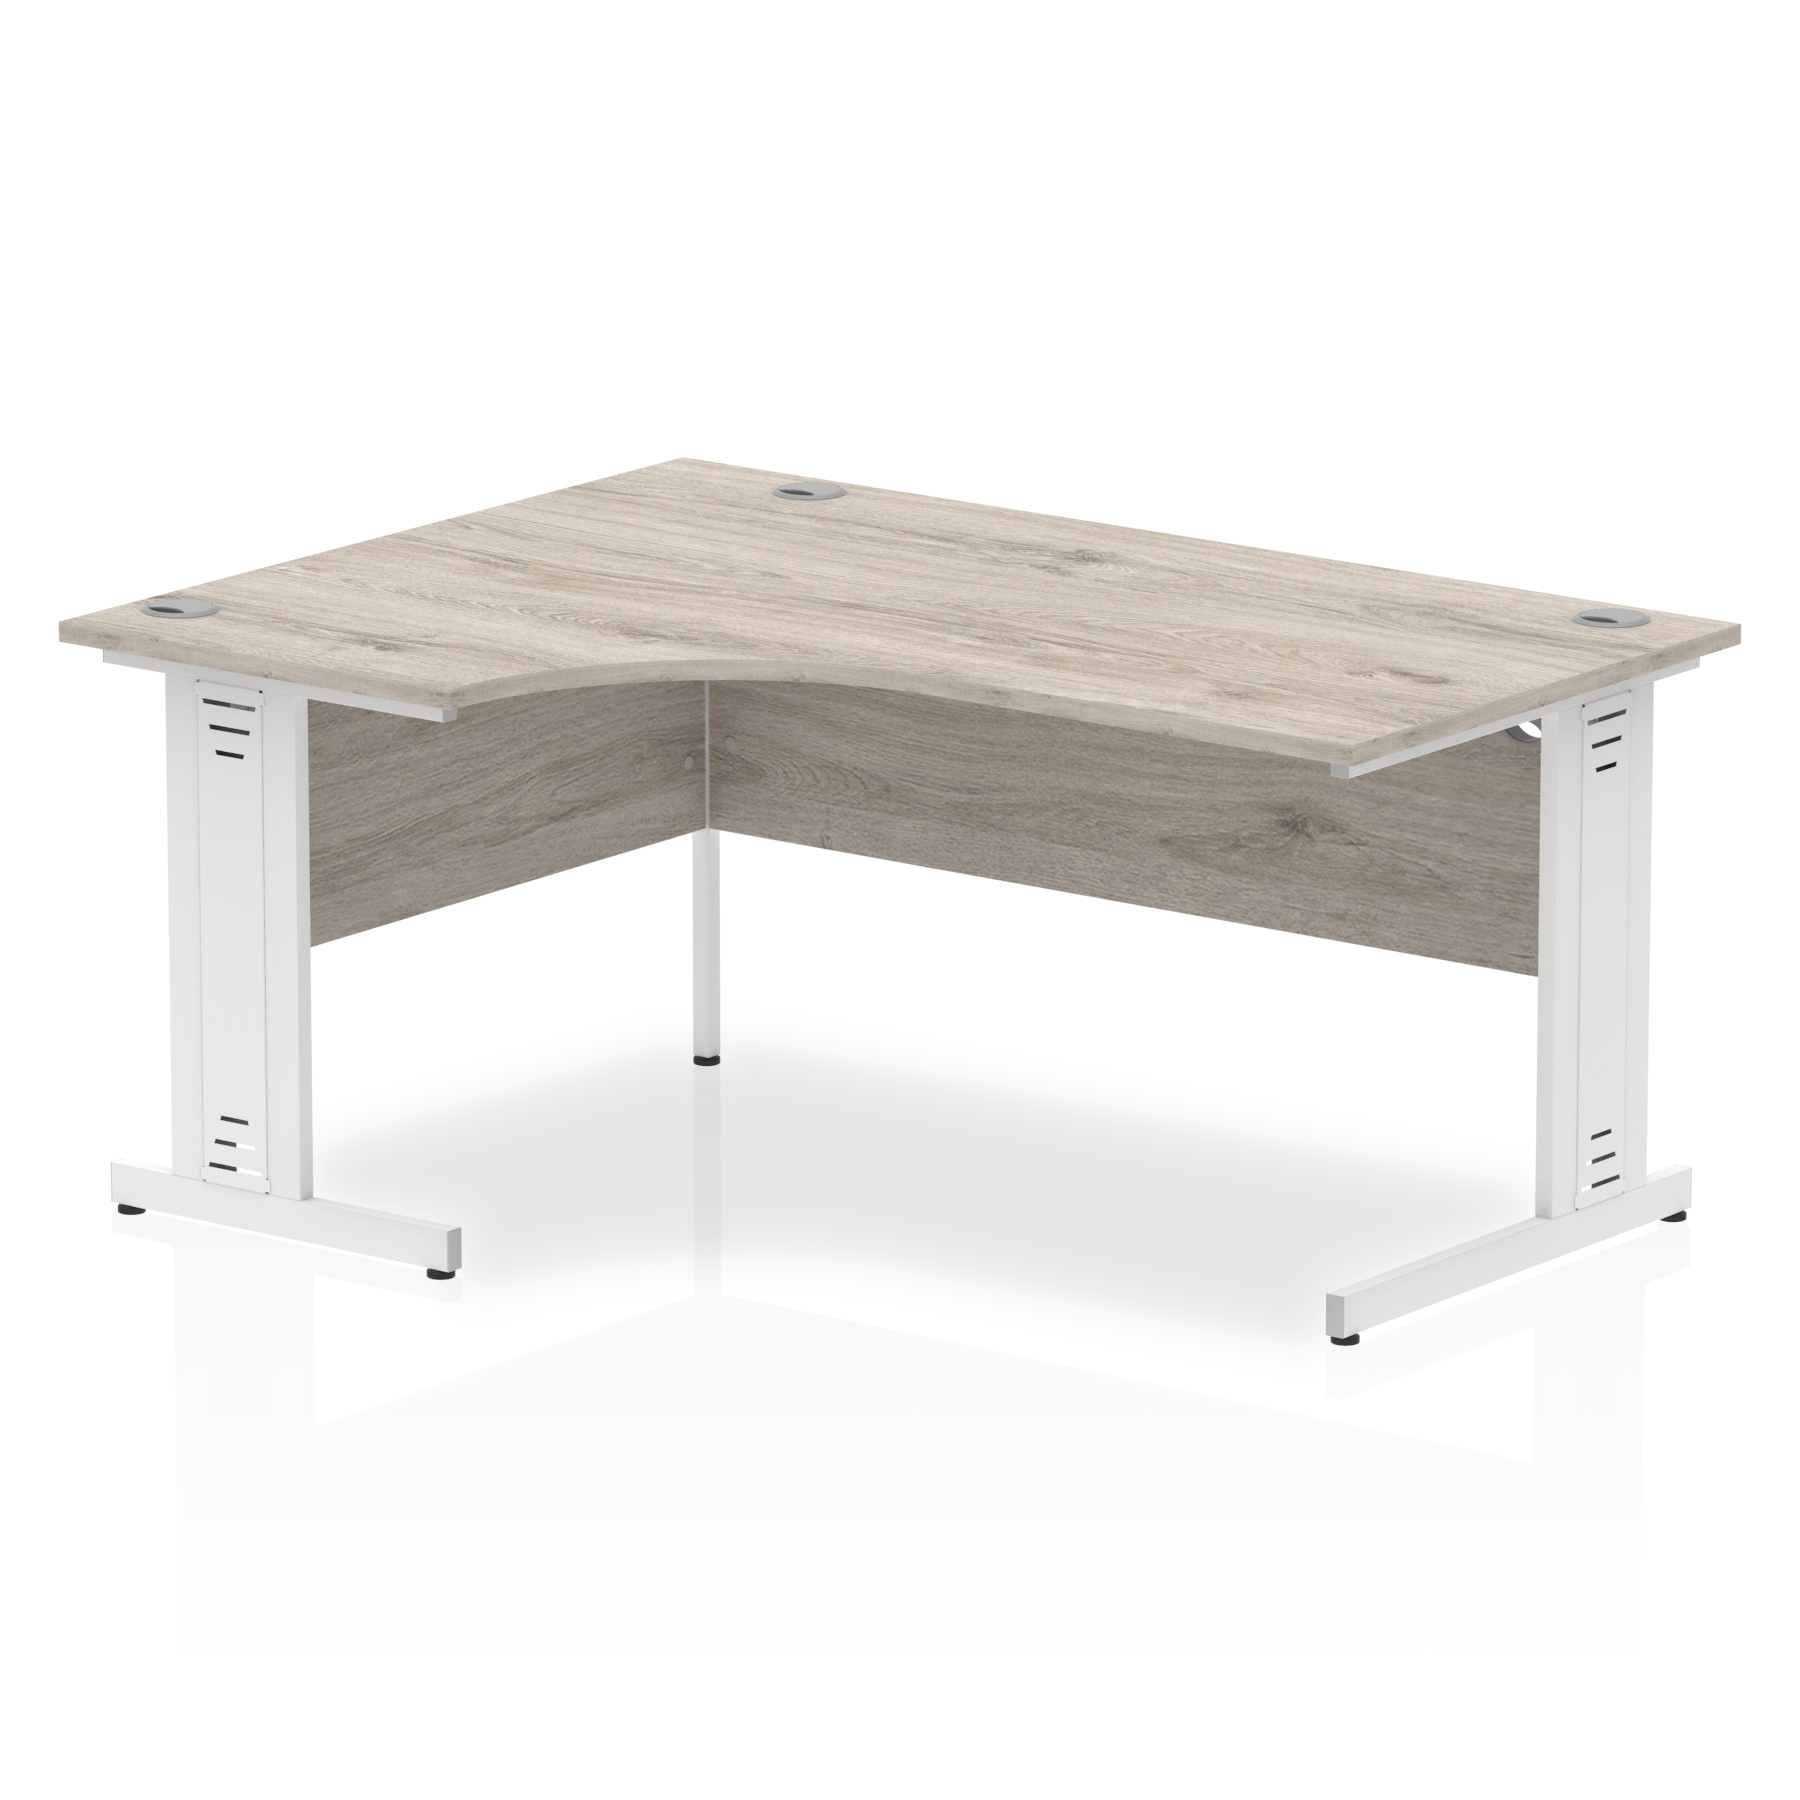 Trexus Radial Desk Left Hand White Cable Managed Leg 1800mm Grey Oak Ref I003534